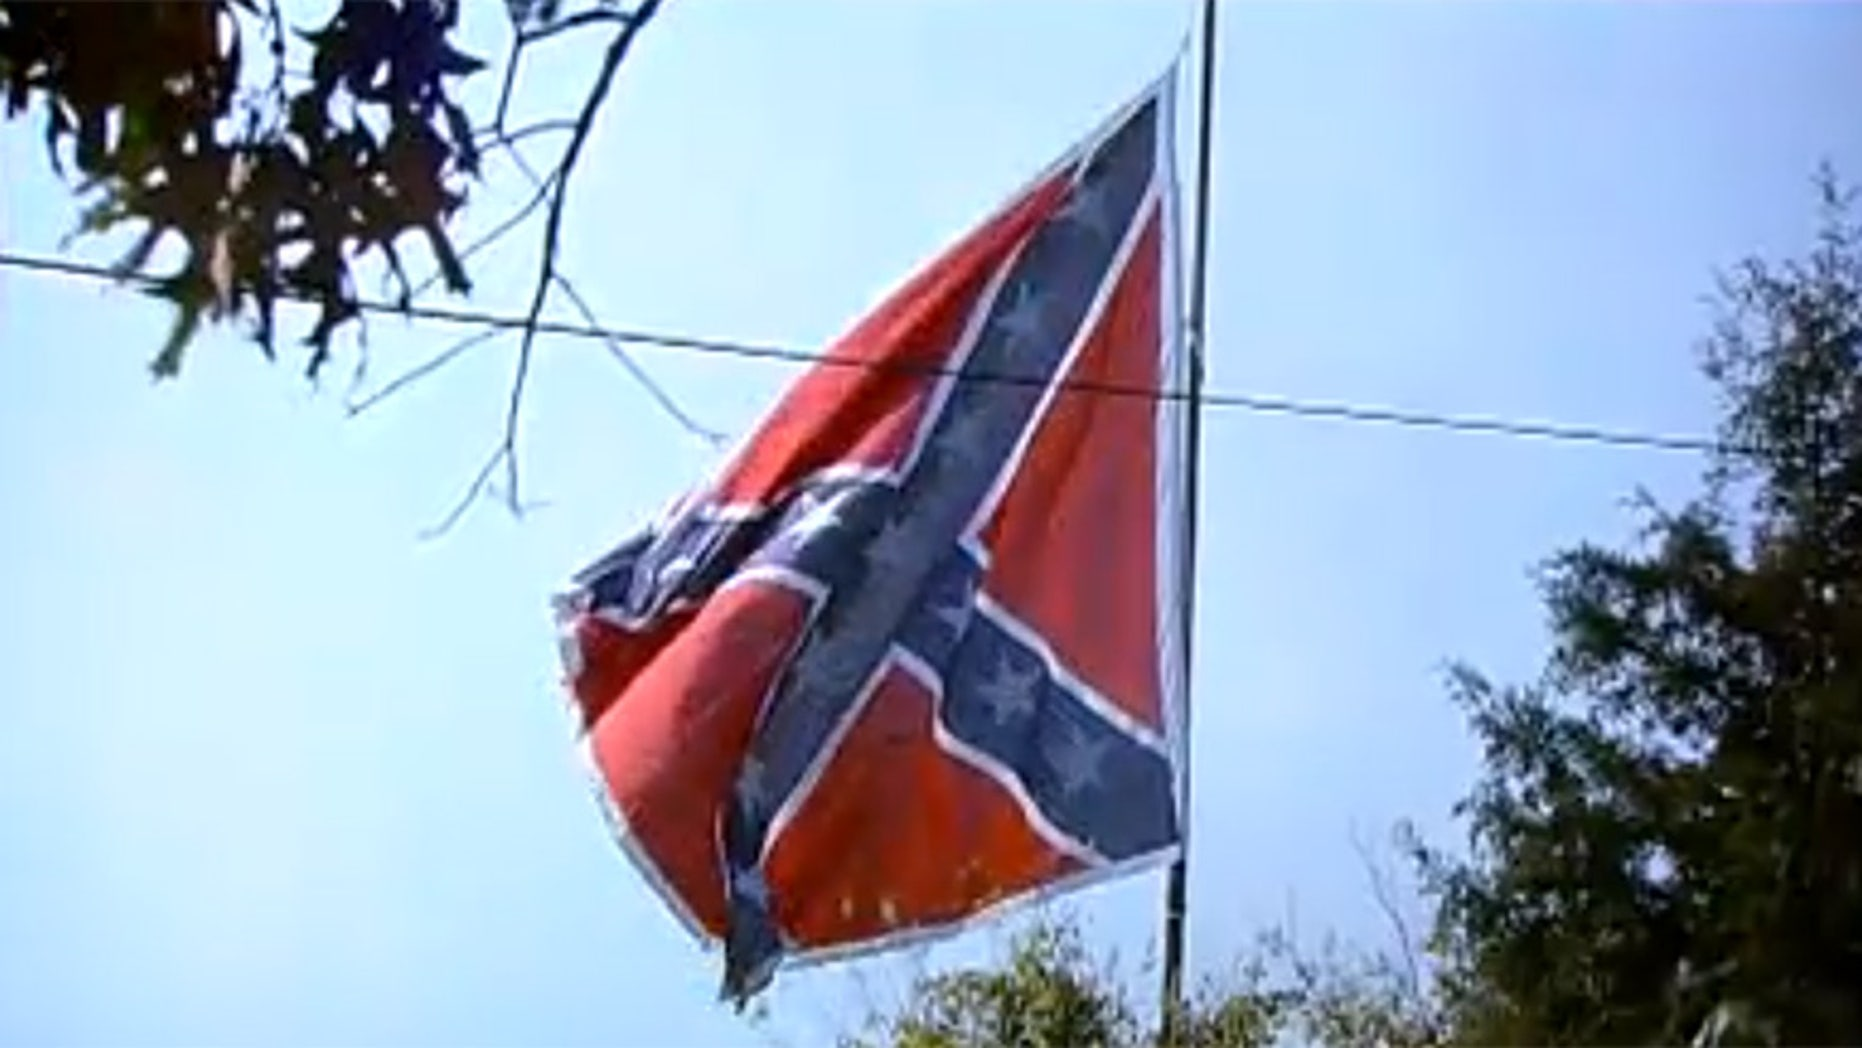 Confederate flags in Fredericksburg, Virginia can be seen from Interstate 95 and a woman got a permit to erect a Black Lives Matter flag just as large.